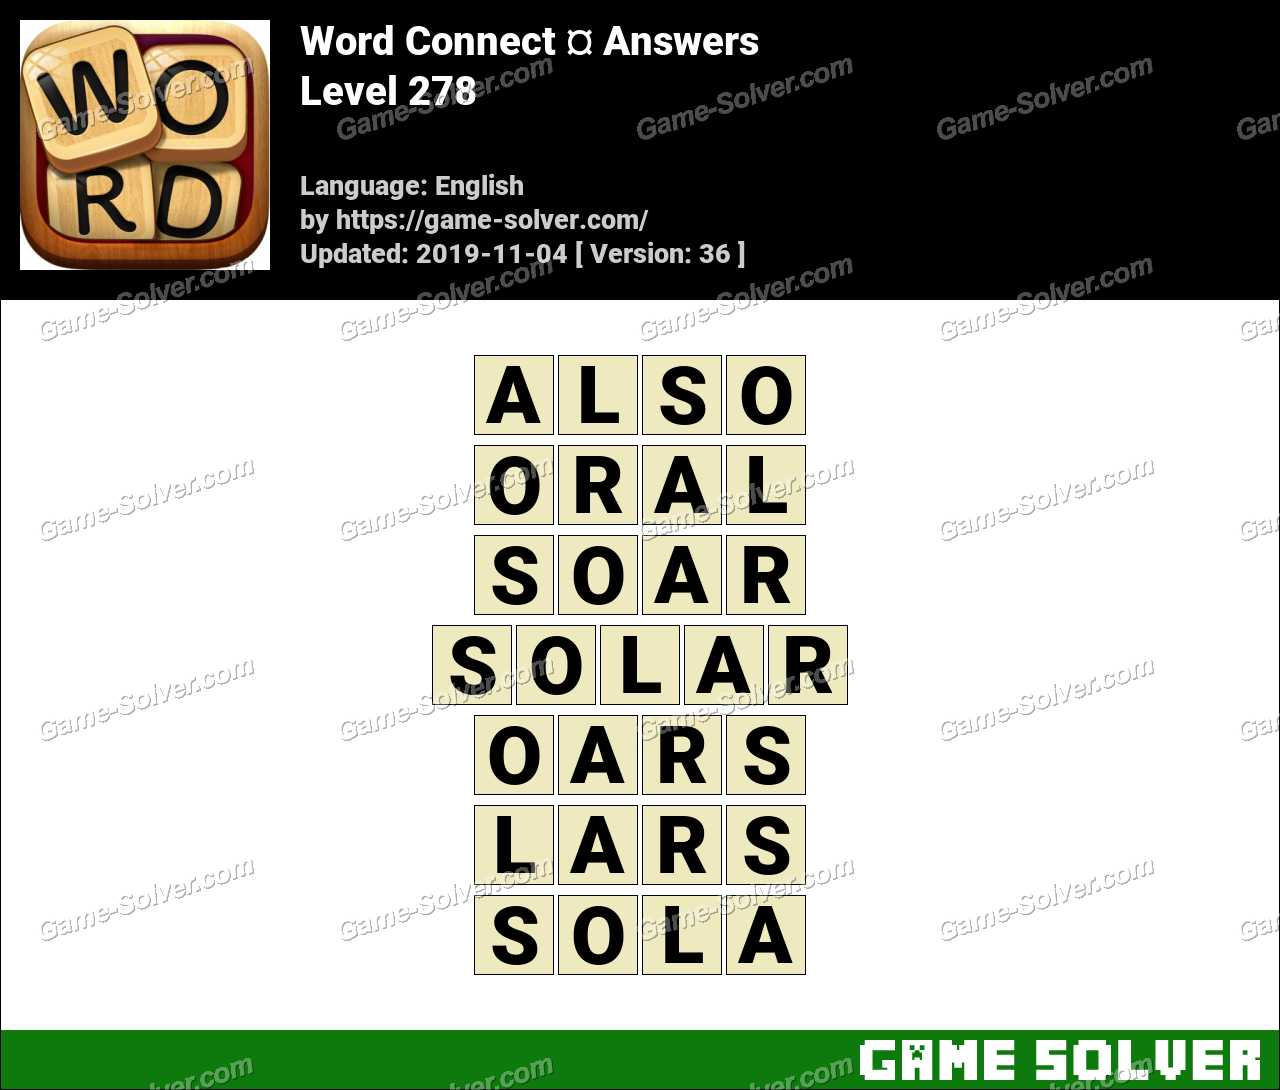 Word Connect Level 278 Answers